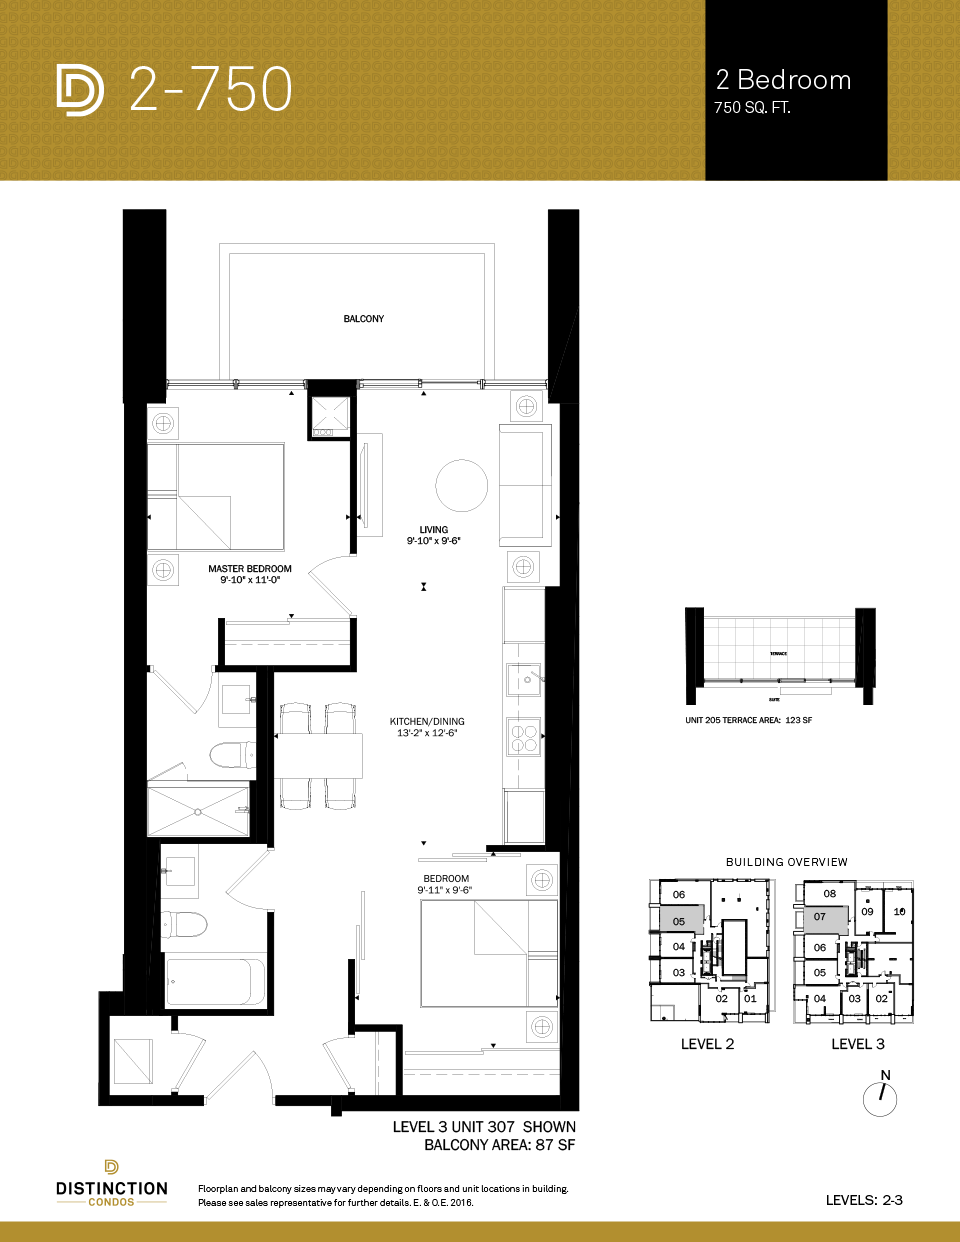 distinction condos floorplan 2-750